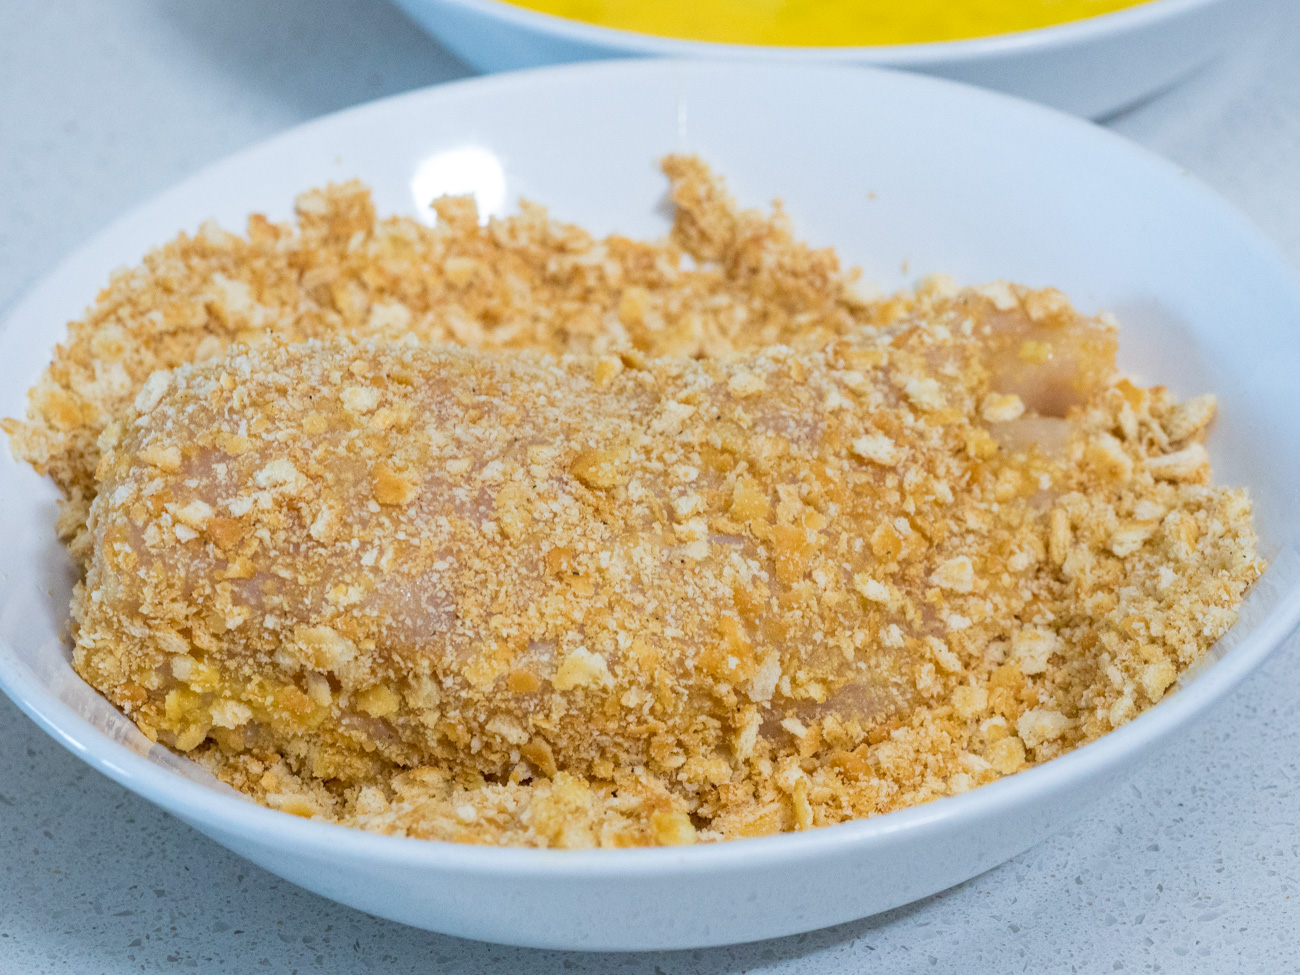 Dip chicken in beaten eggs, and then dredge in cracker crumbs, pressing mixture into the meat.